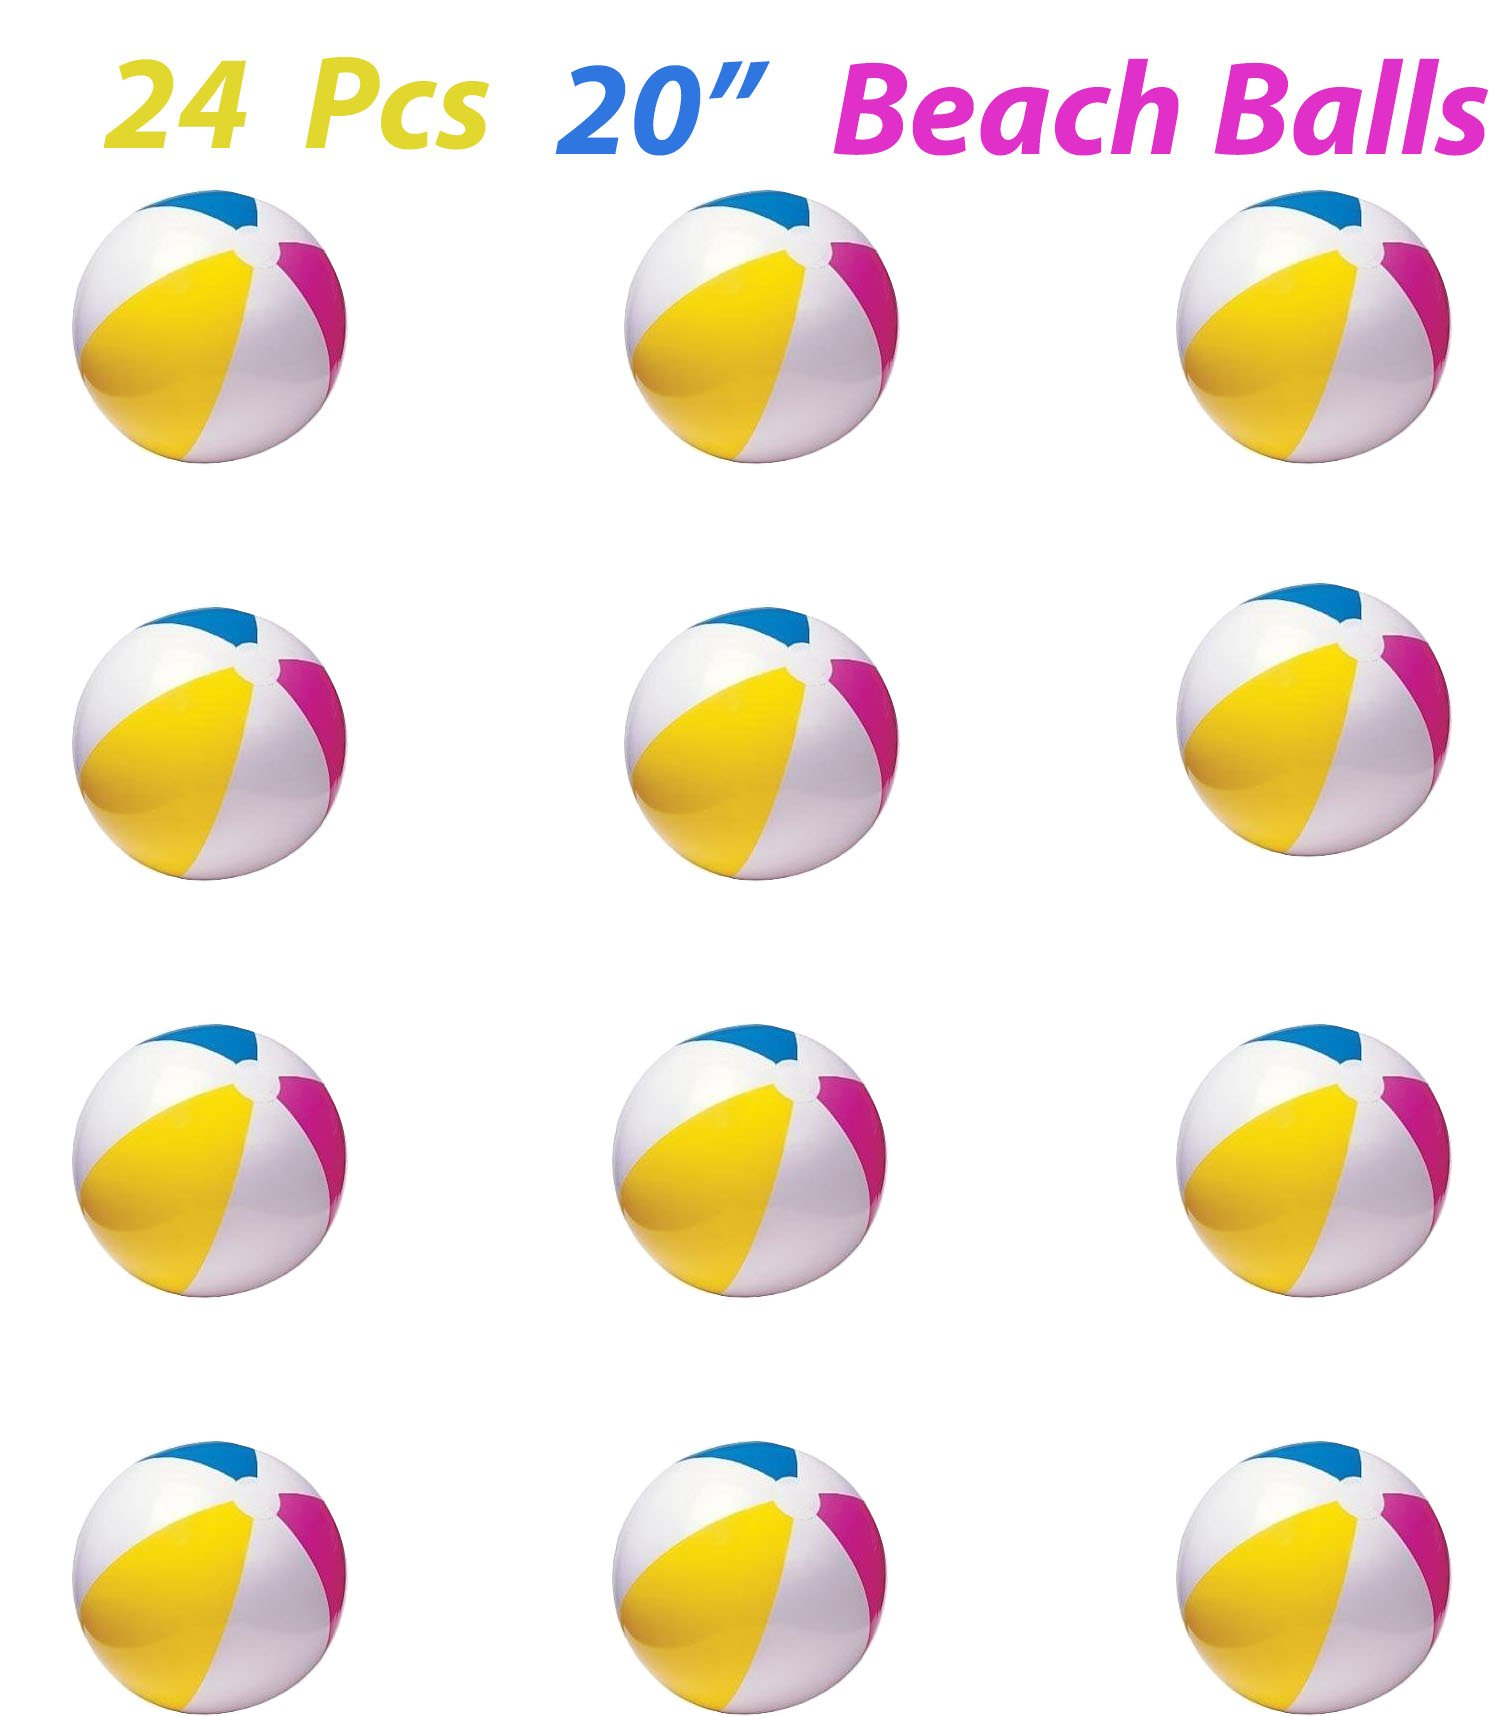 Rhode Island Novelty 20 Inch Beach Ball (24 Piece Per Order) (2)